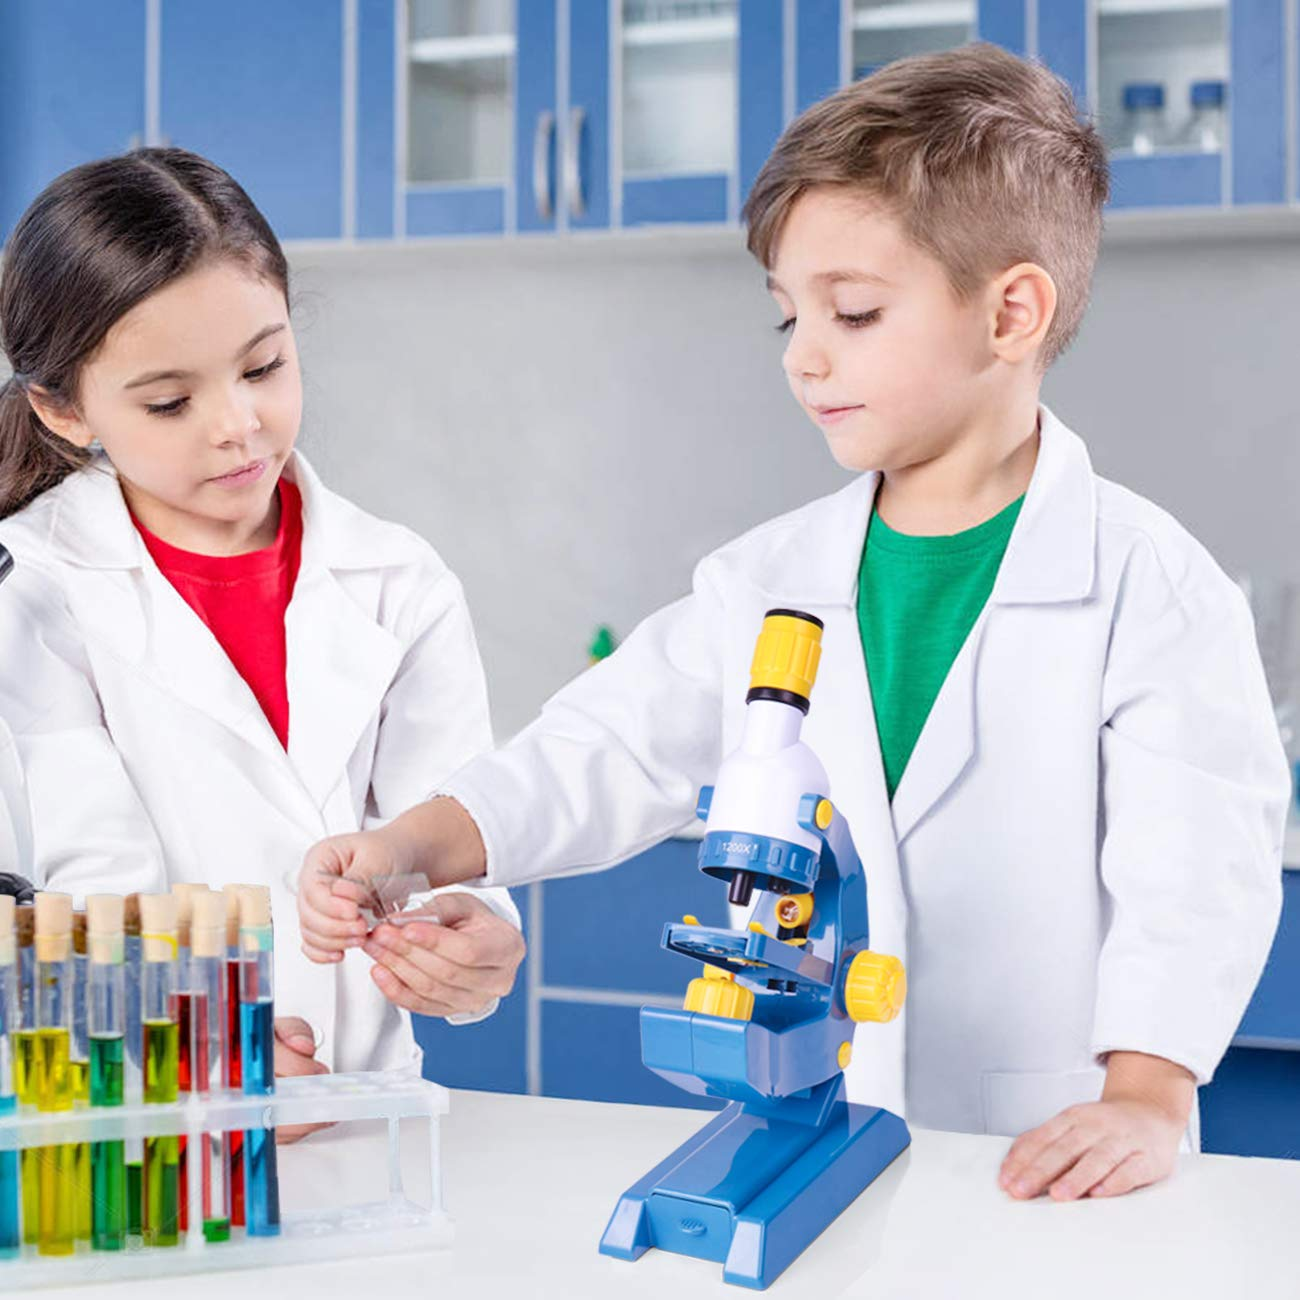 EXERCISE N PLAY Kids Microscope Kit with Slides Childrens Play Microscope